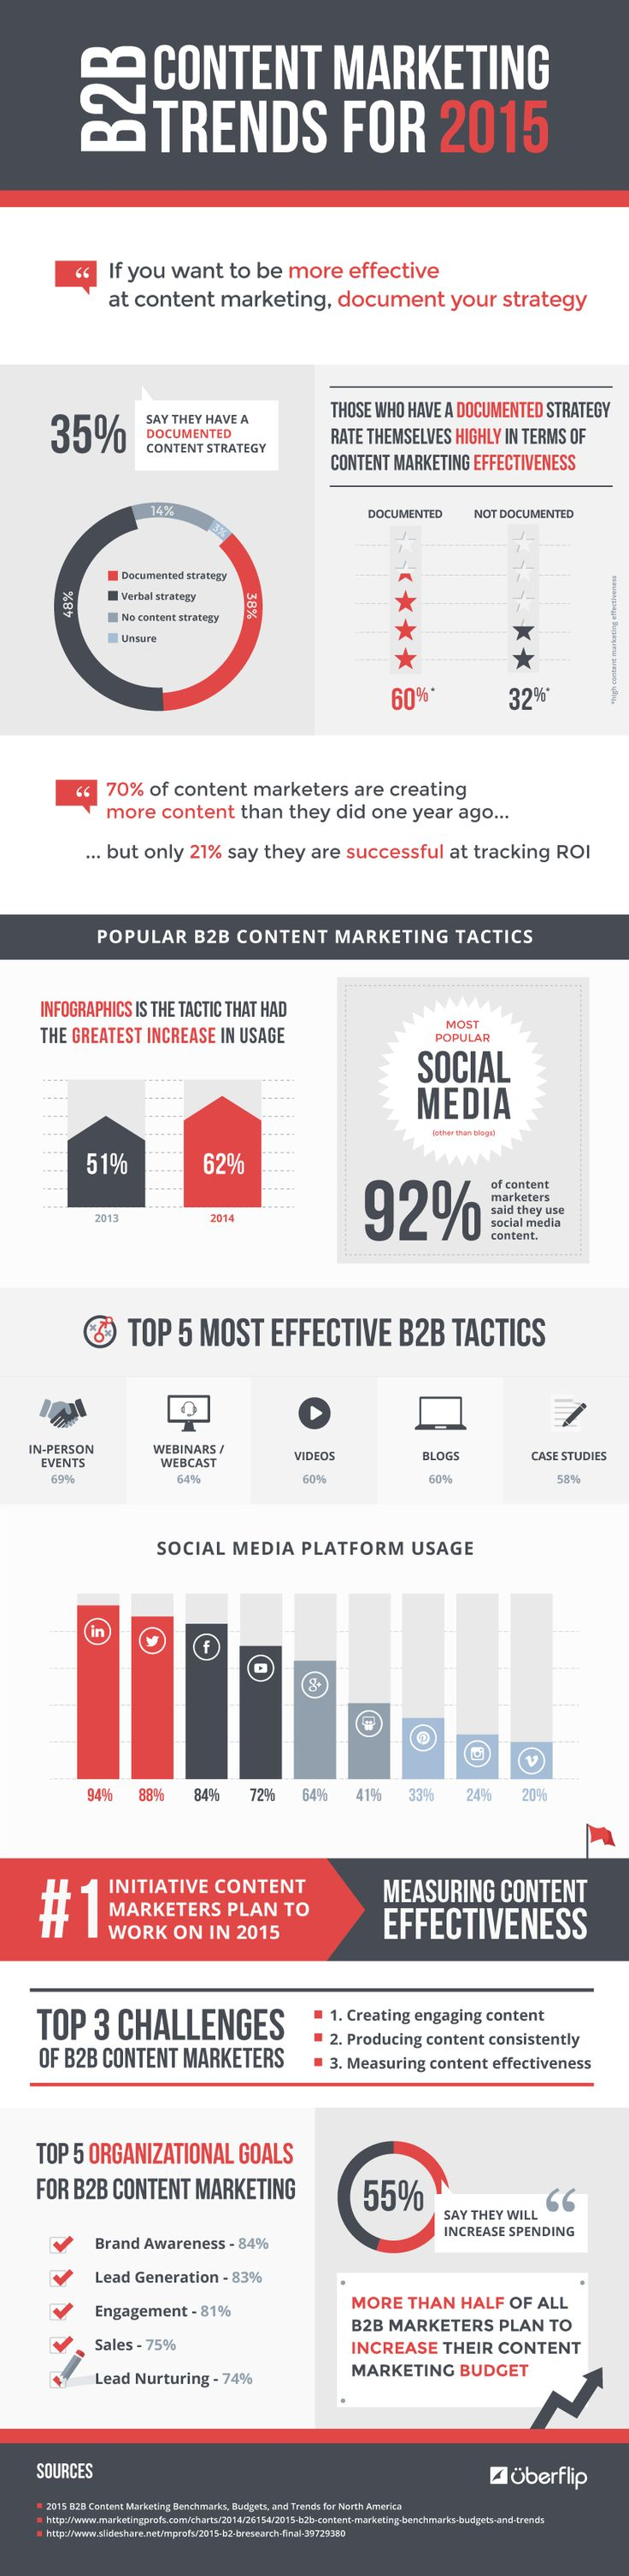 b2b content marketing trends 2015